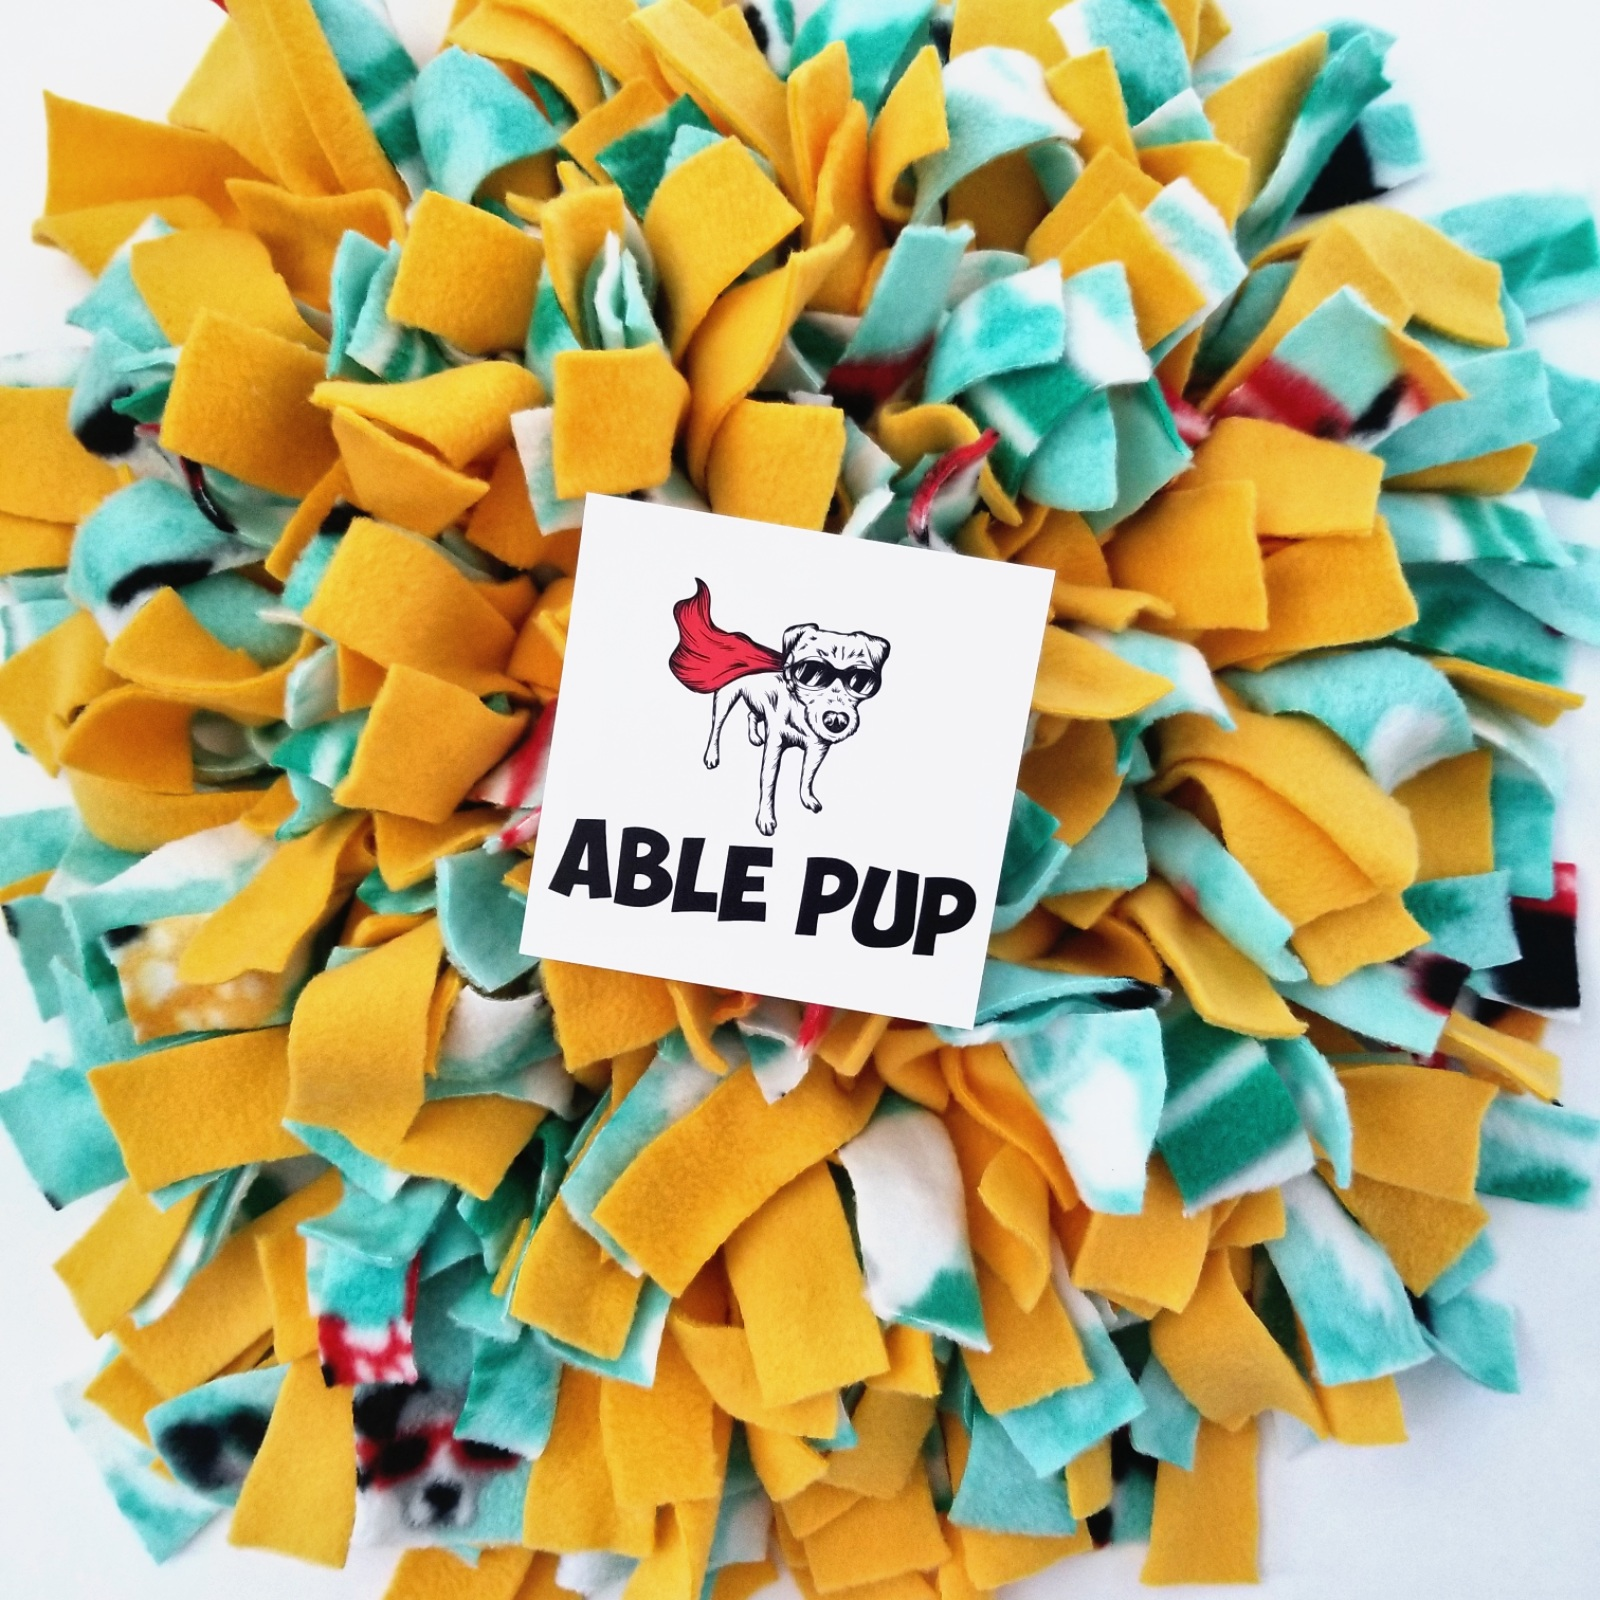 Able Pup Snuffle Mat - One time purchase